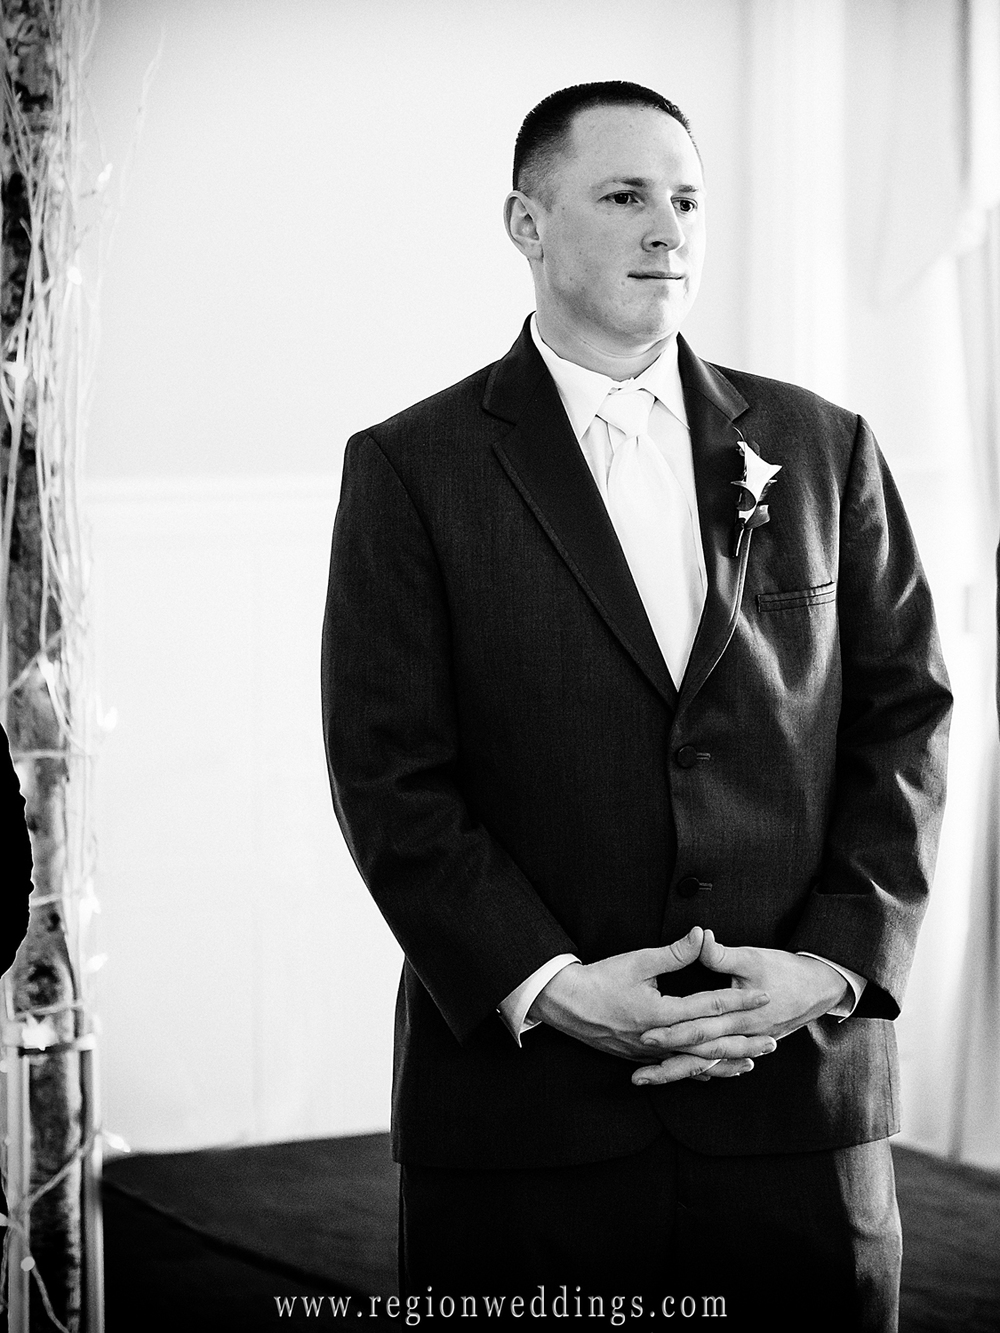 The groom reacts as he sees his bride for the first time.